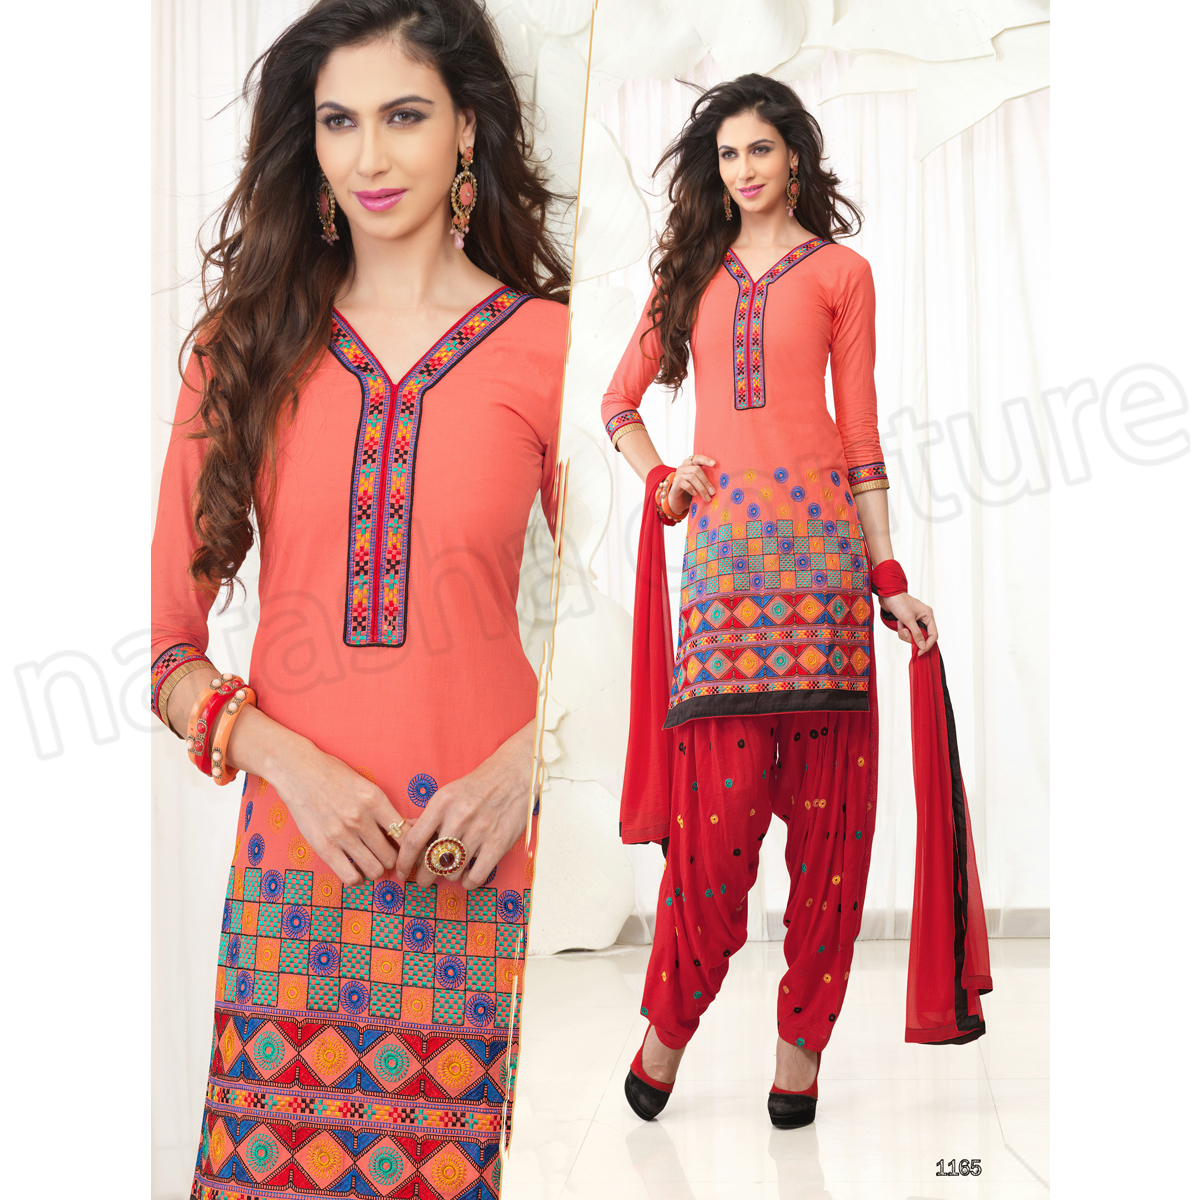 Latest Indian Patiala shalwar kameez fashion 2015-2016 (29)